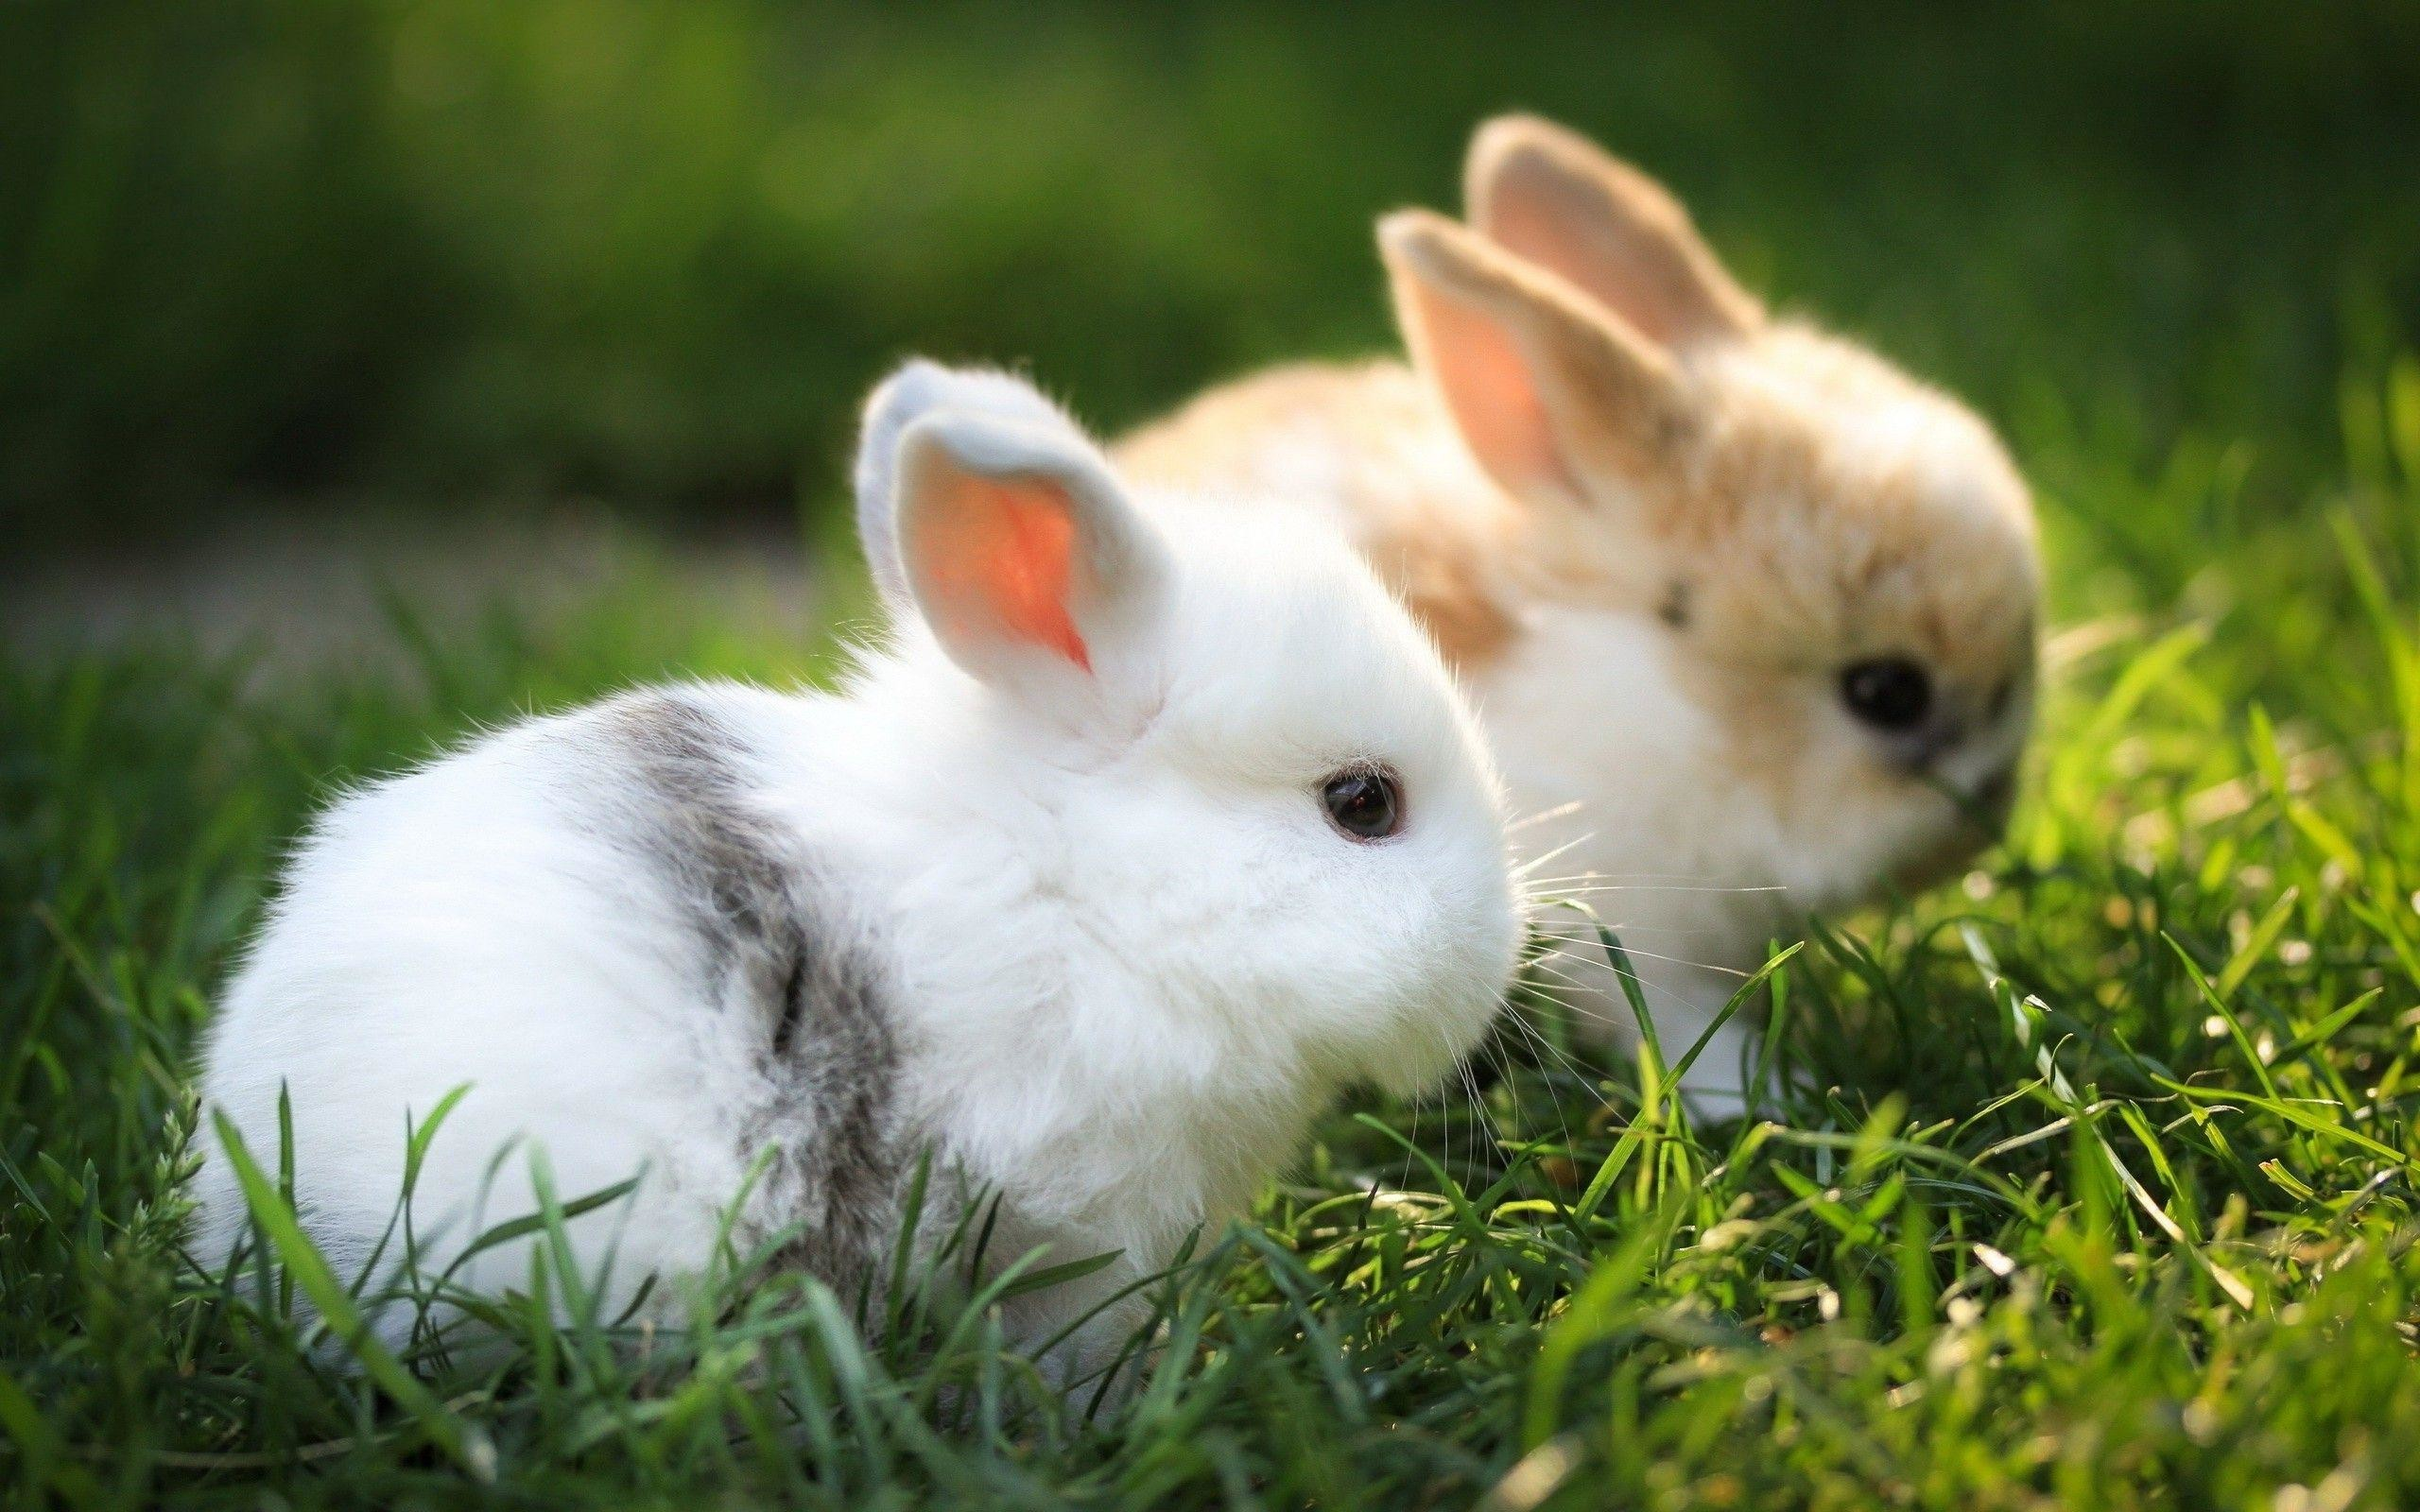 Wallpapers Of Bunnies Posted By Sarah Tremblay